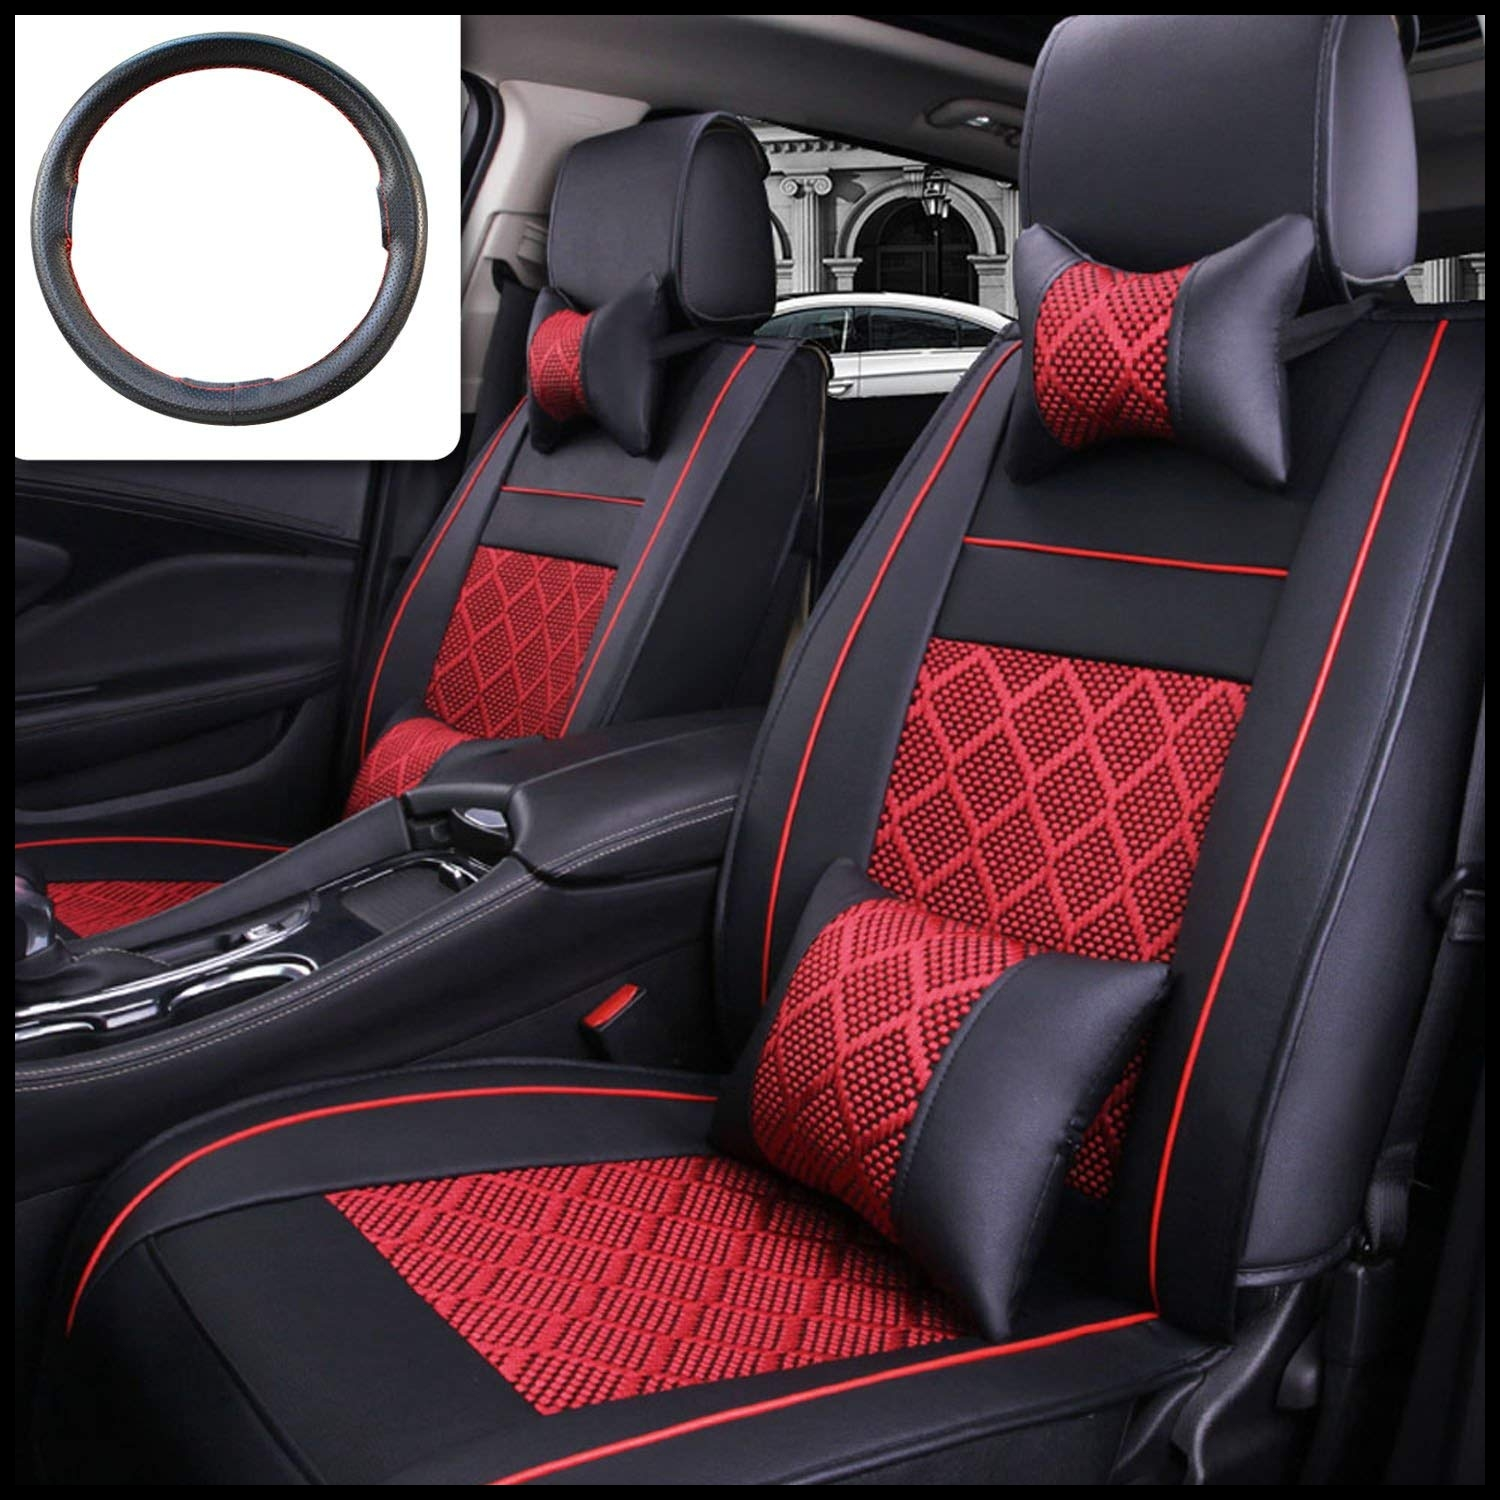 Amazon FLY5D 10Pcs PU Leather Ice Silk Auto Car Seat Covers Automotive Seat Covers for Universal 5 Seat Car Four Season Automotive